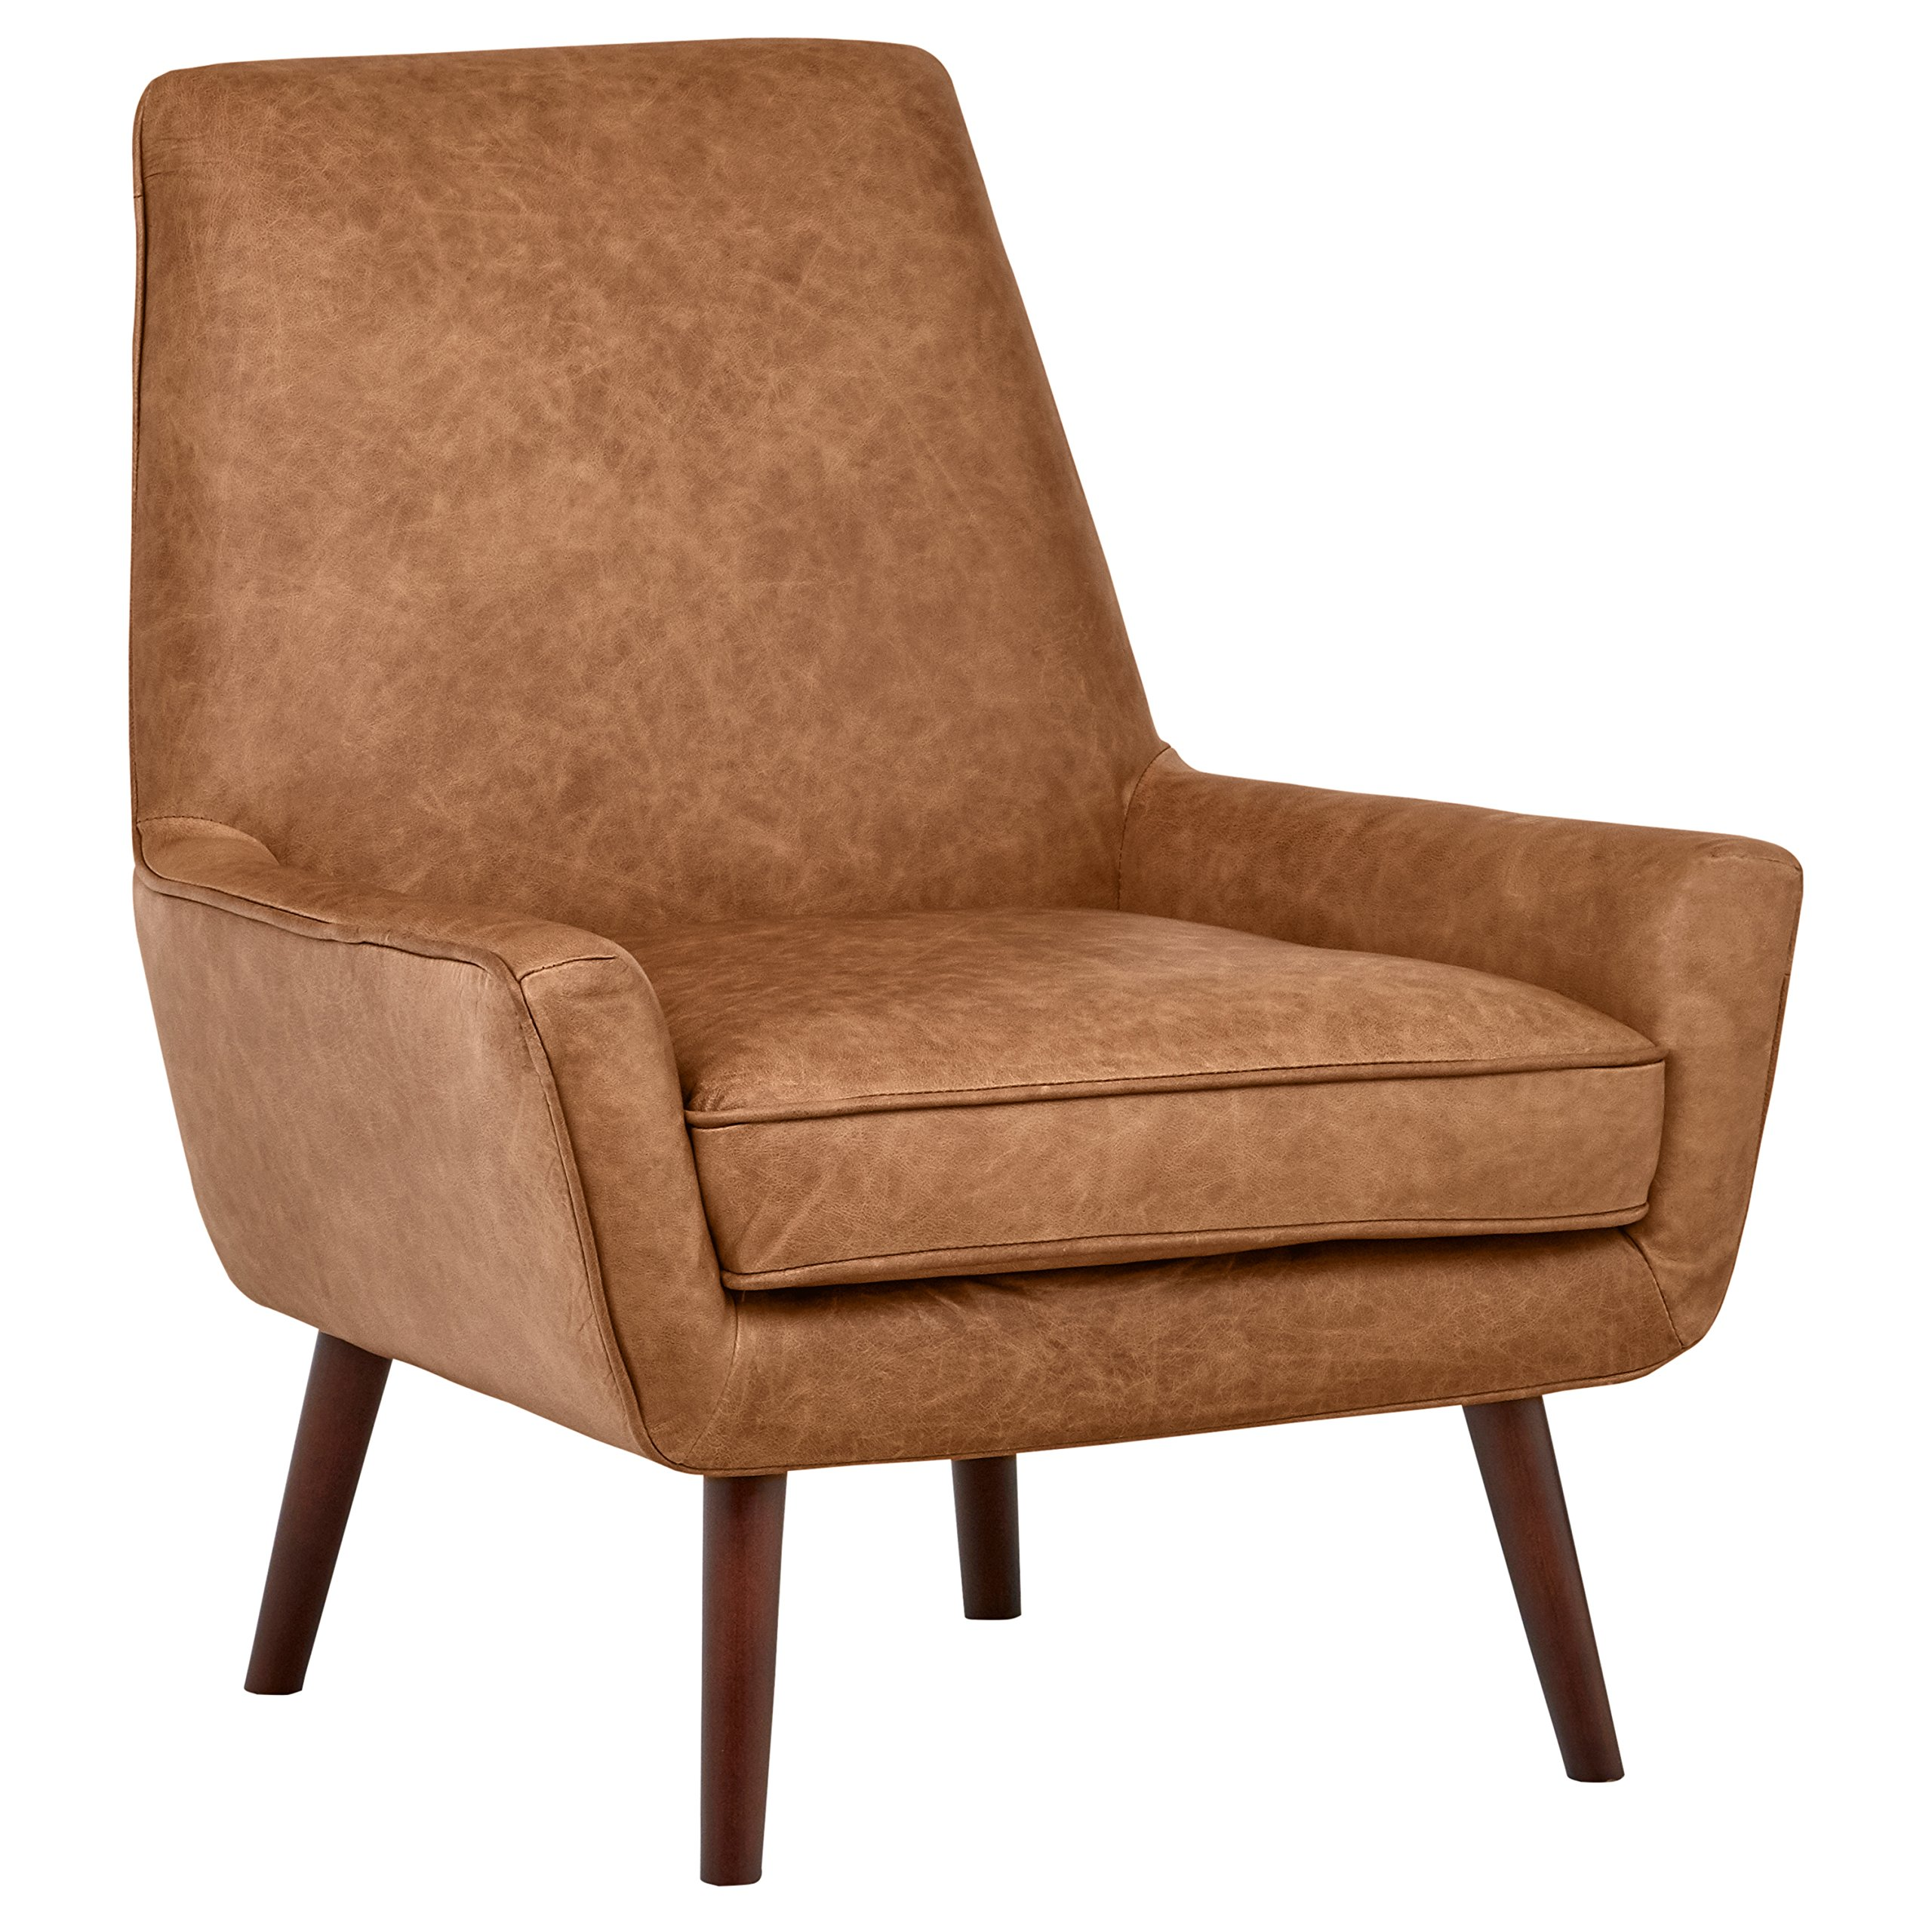 Rivet Jamie Mid Century Leather Low Arm Accent Chair, 31